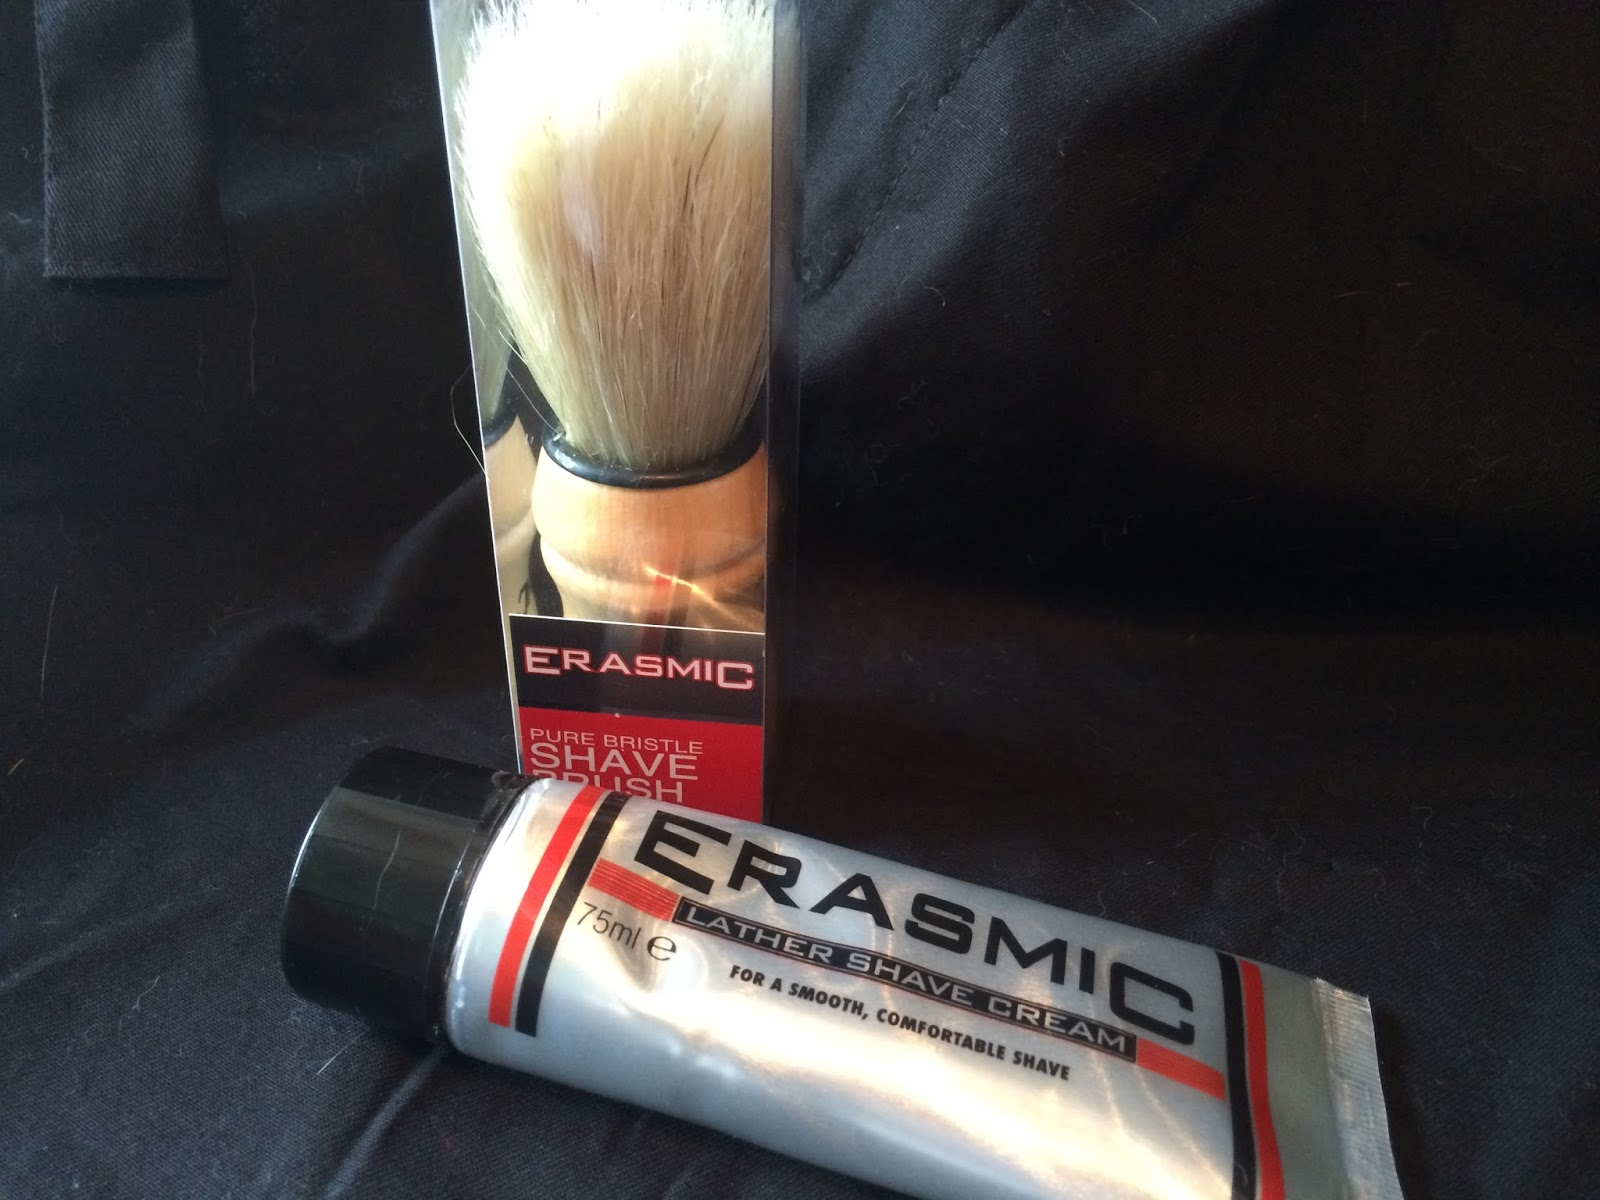 Erasmic Lather Shave Cream